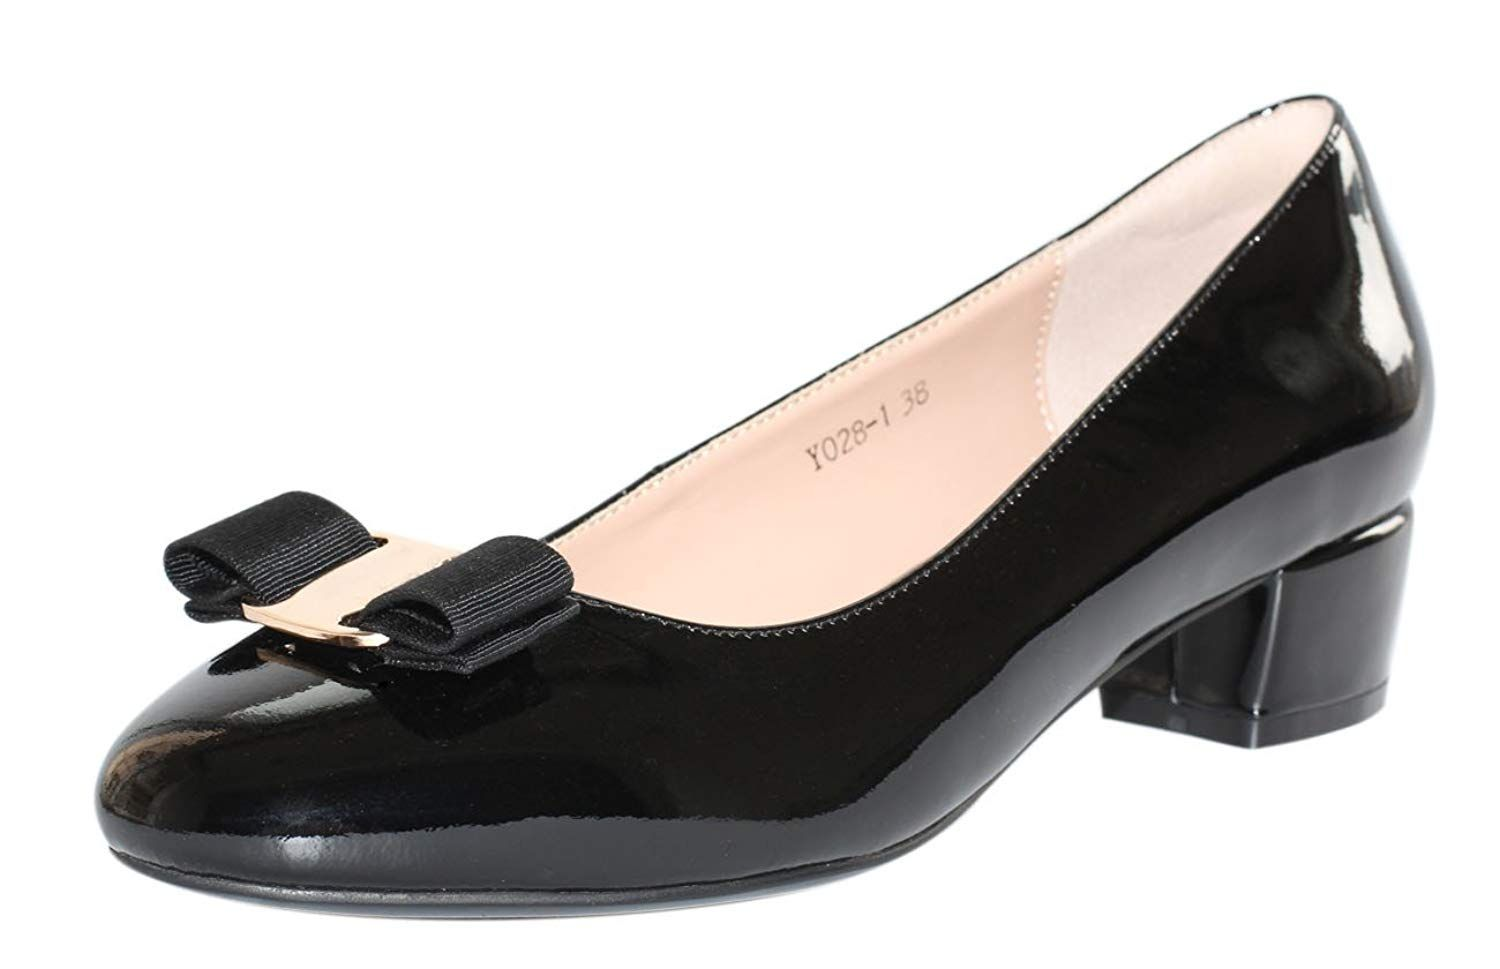 c69da143153 JARO VEGA Women s Glossy Patent Leather Low Chunky Heel with Bow Dress  Pumps Shoes.Women s